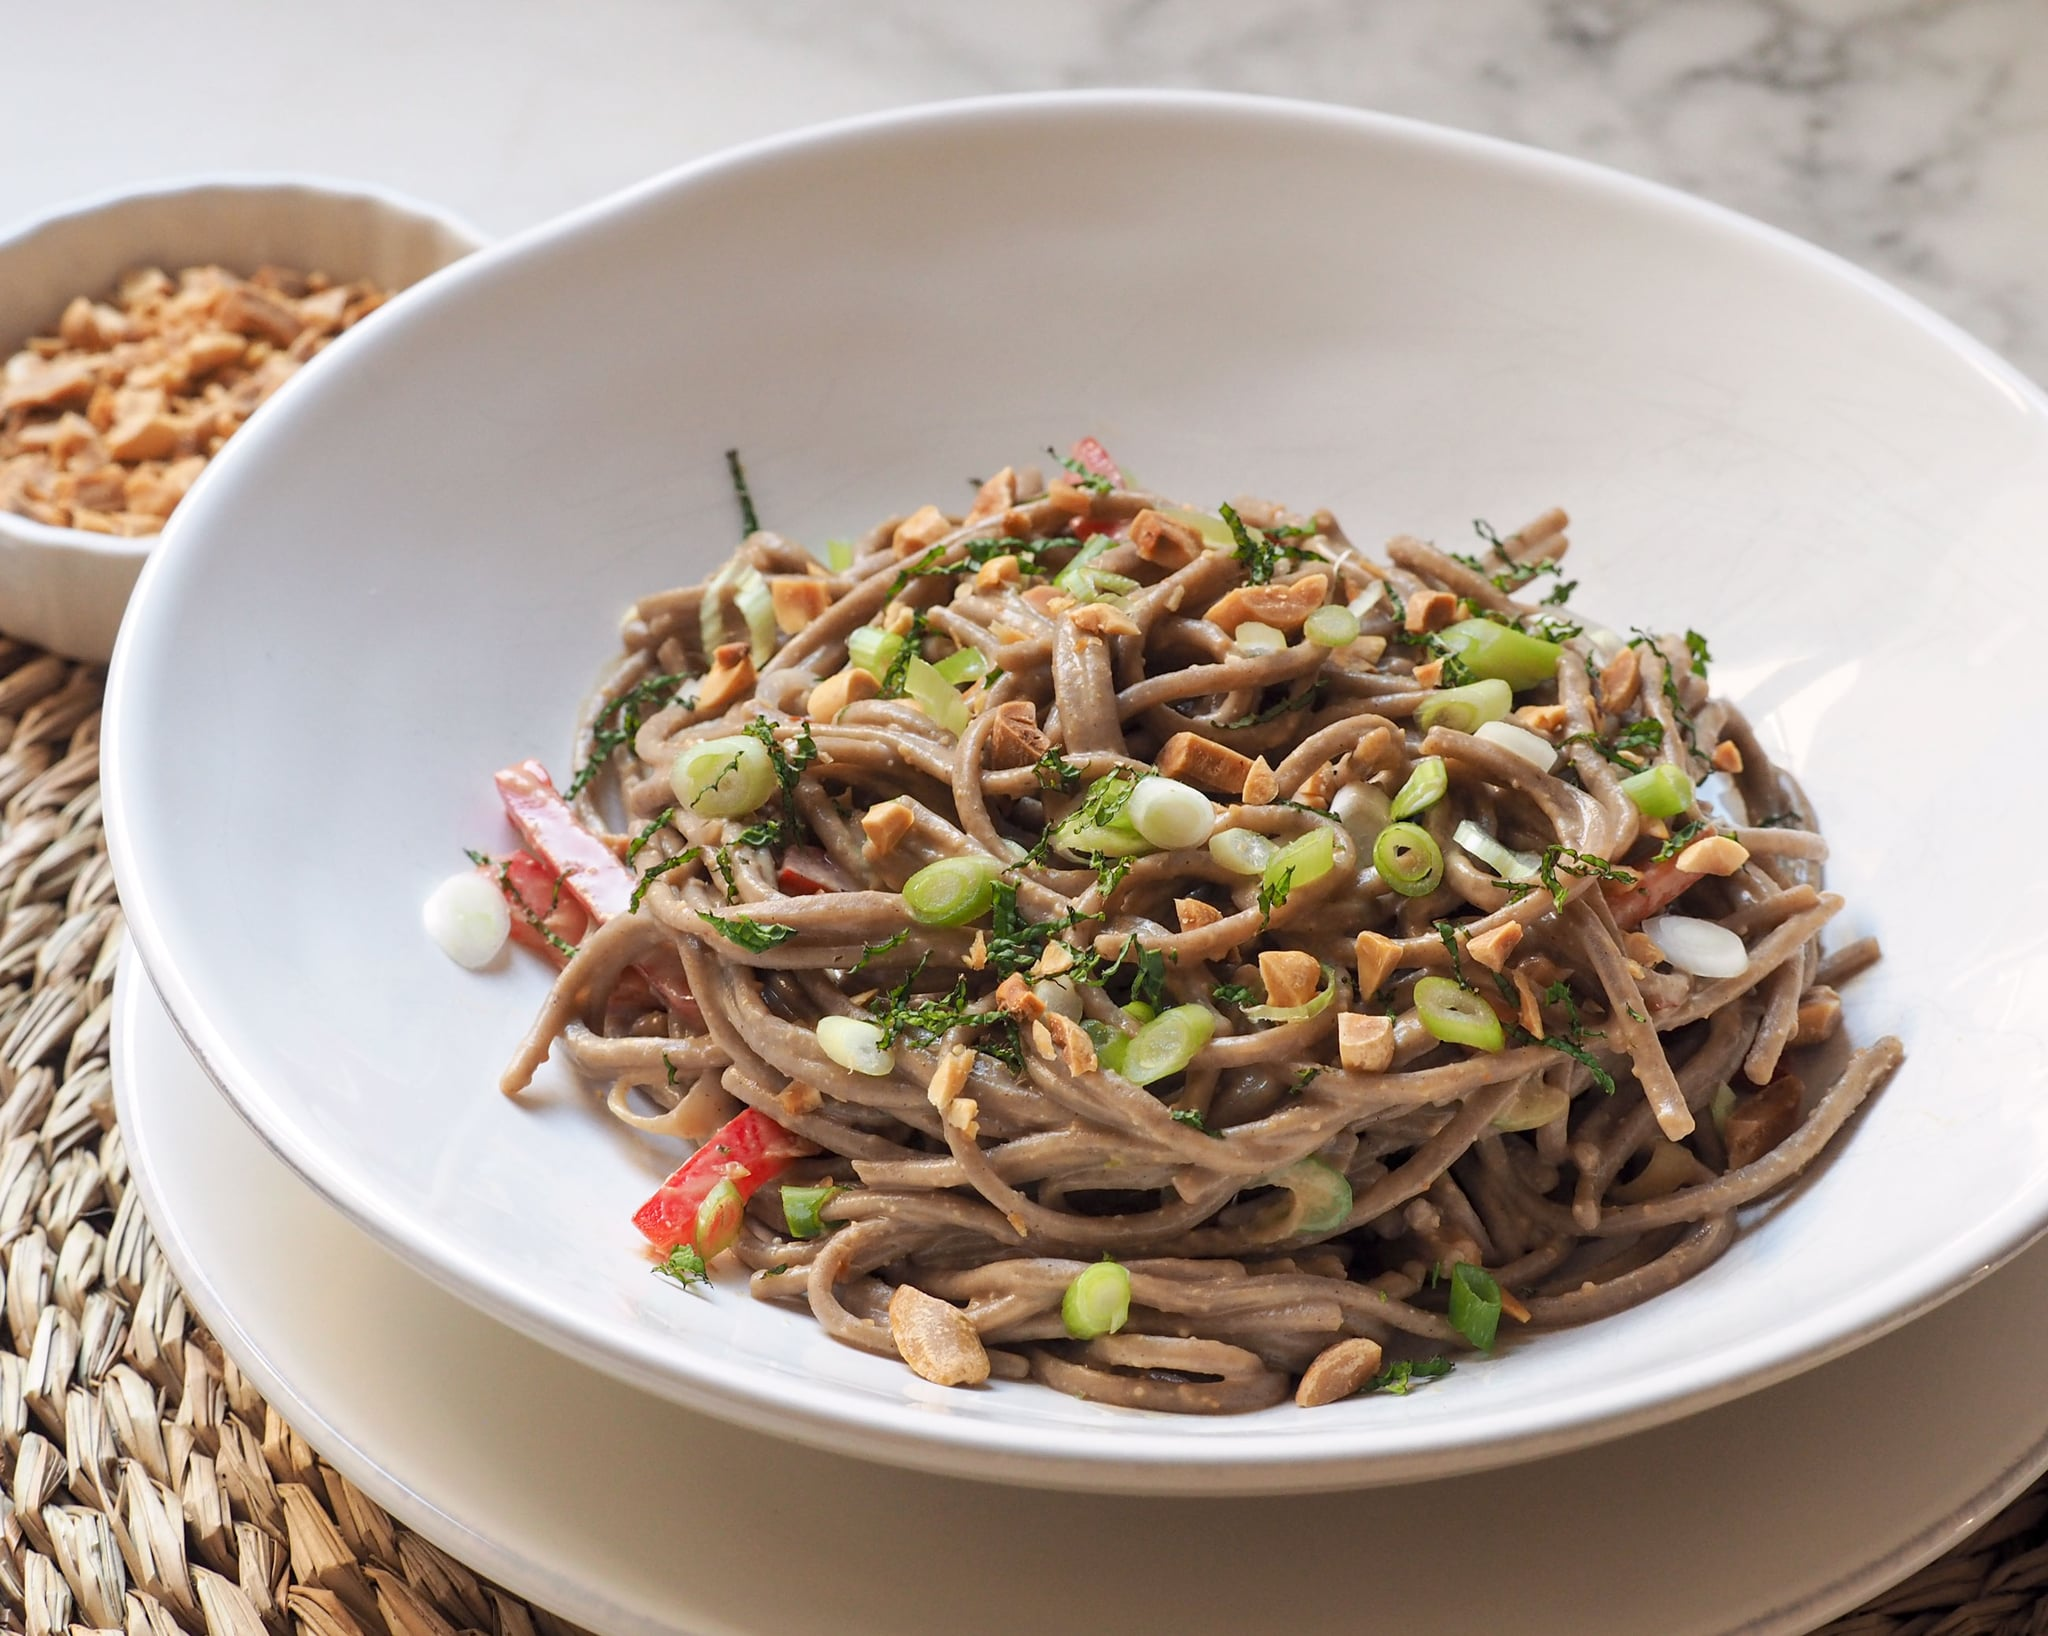 Shake up your Weeknight Routine w. Quick and Easy Asian Noodles w. Peanut Sauce